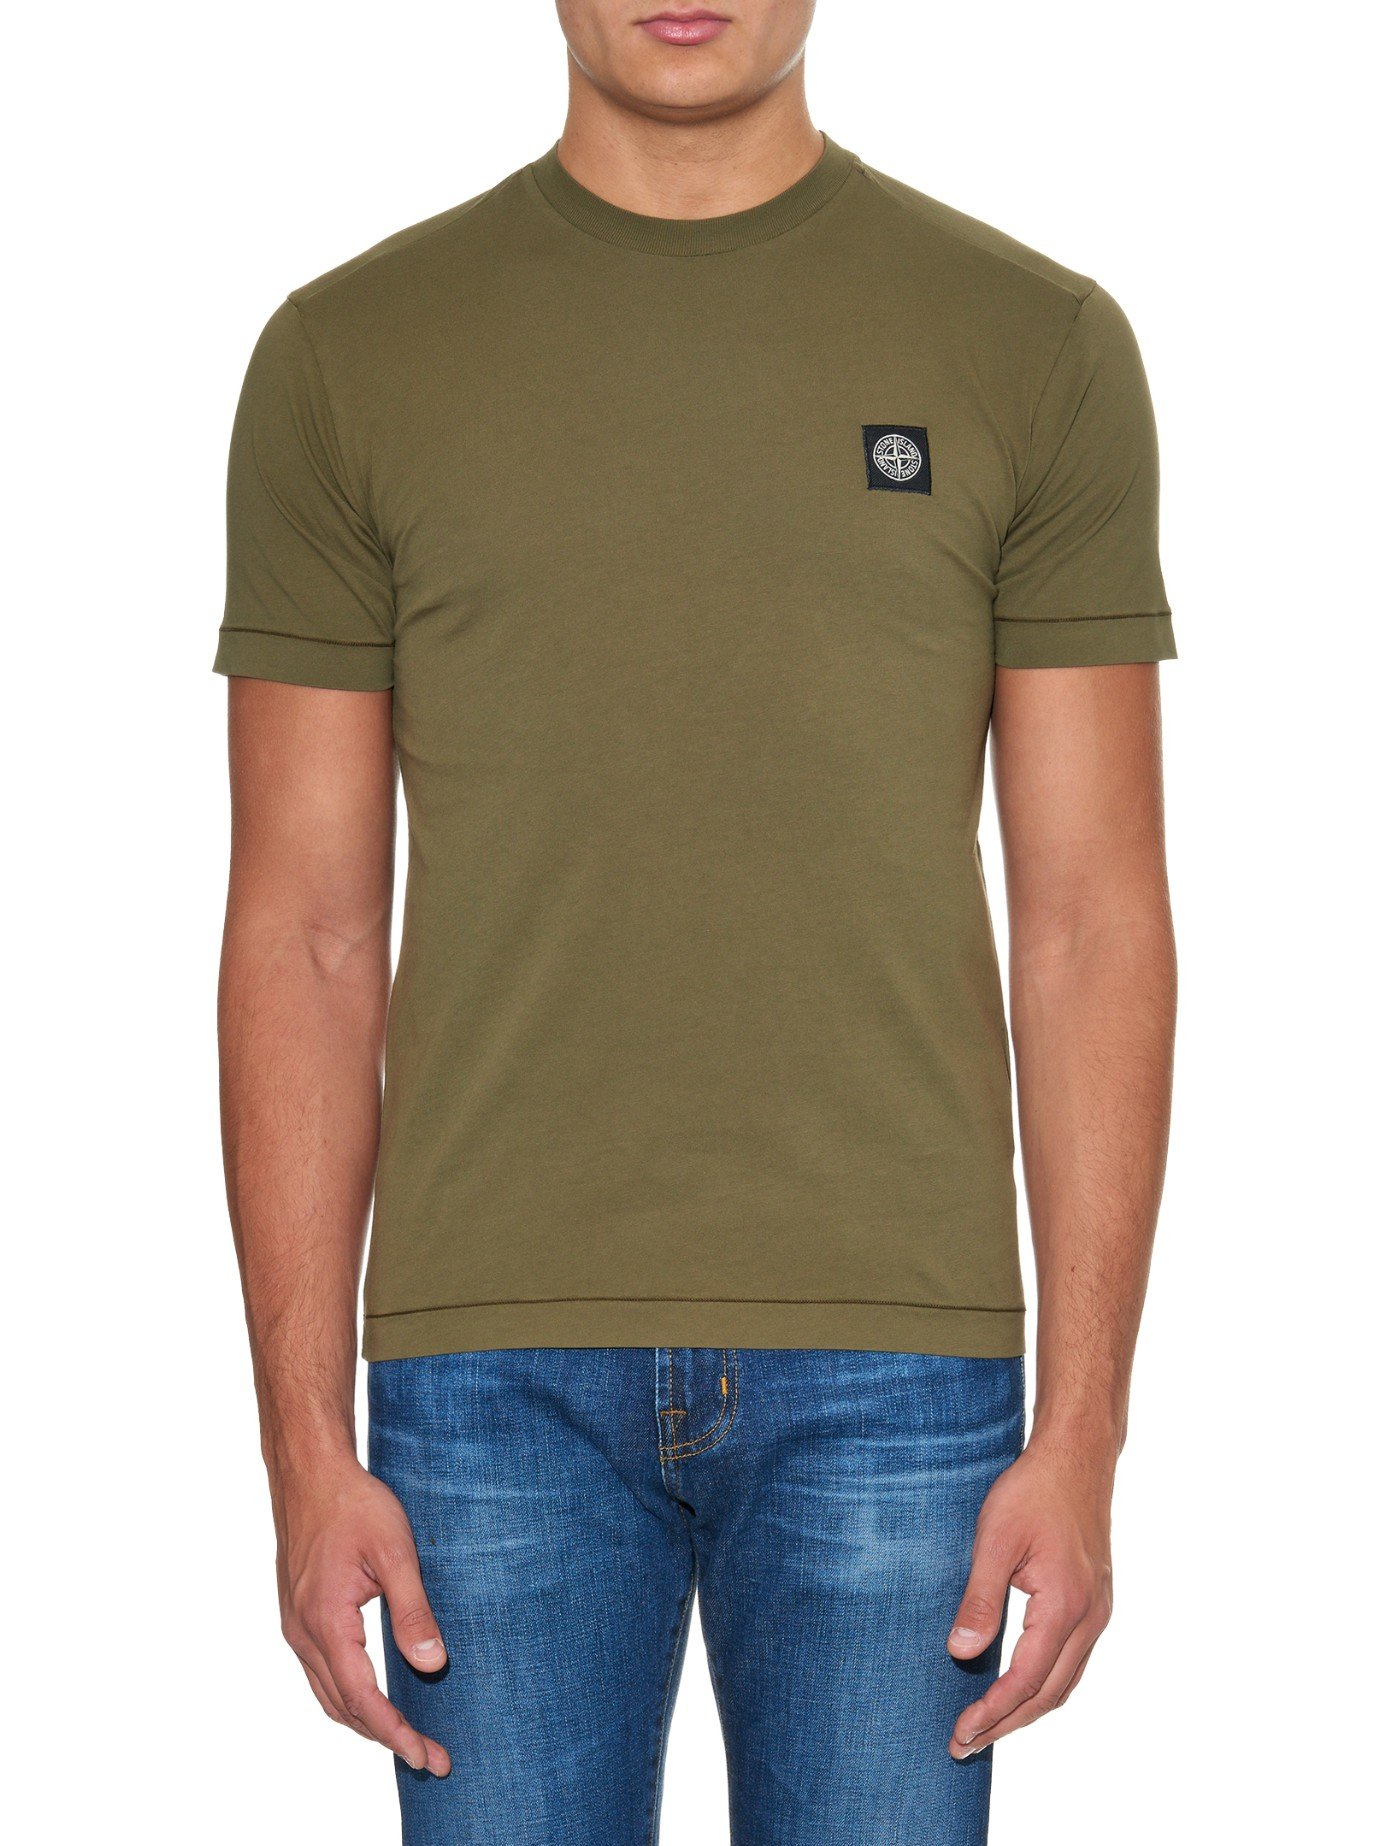 Stone Island Logo Patch Jersey T Shirt In Brown For Men Lyst